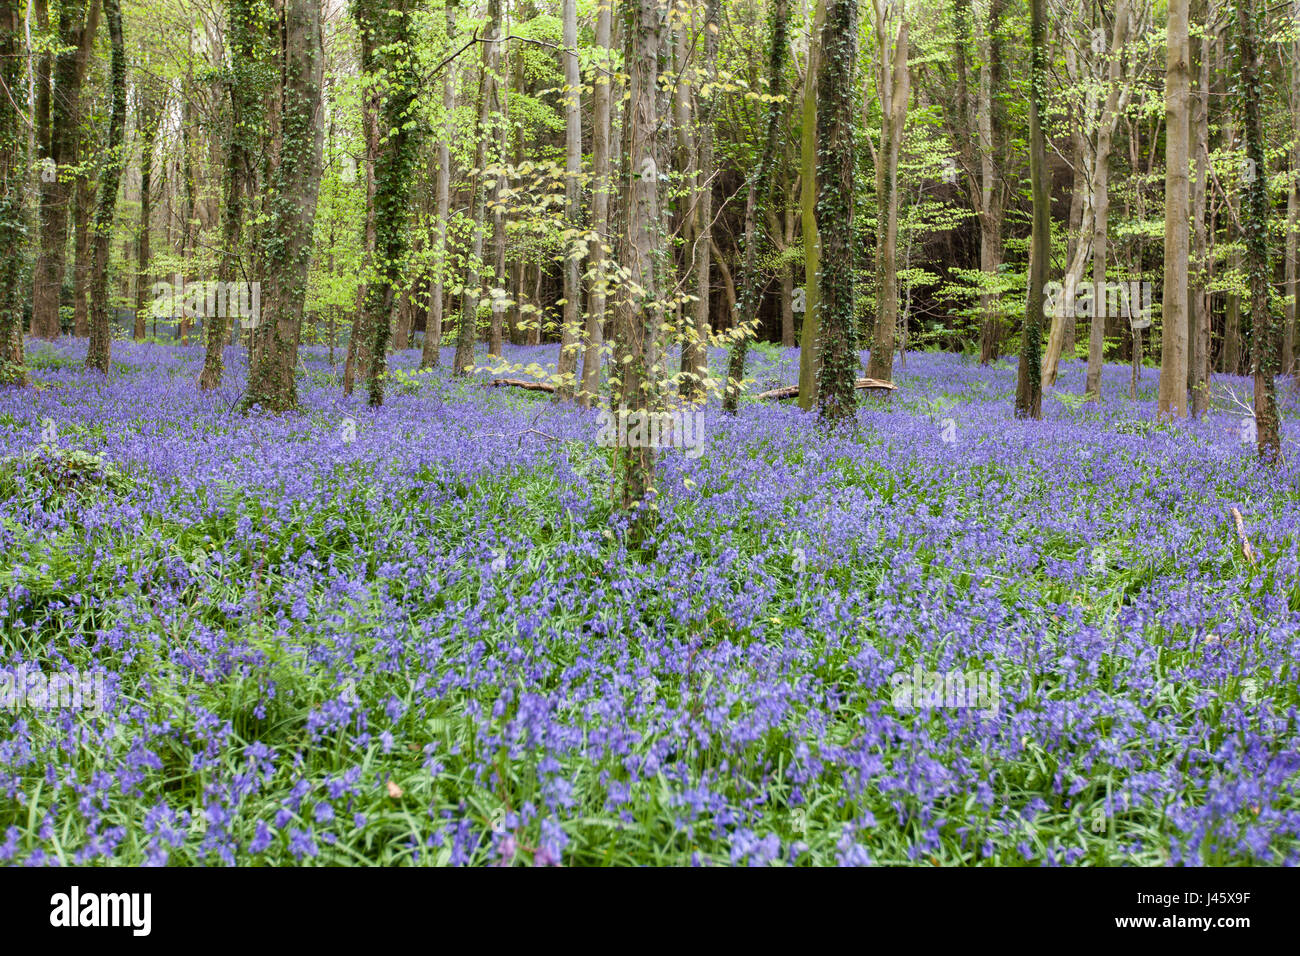 Warrenpoint, Couny Down, Northern Ireland 22 April 2017. Carpet of Bluebells in full bloom in a wood Stock Photo